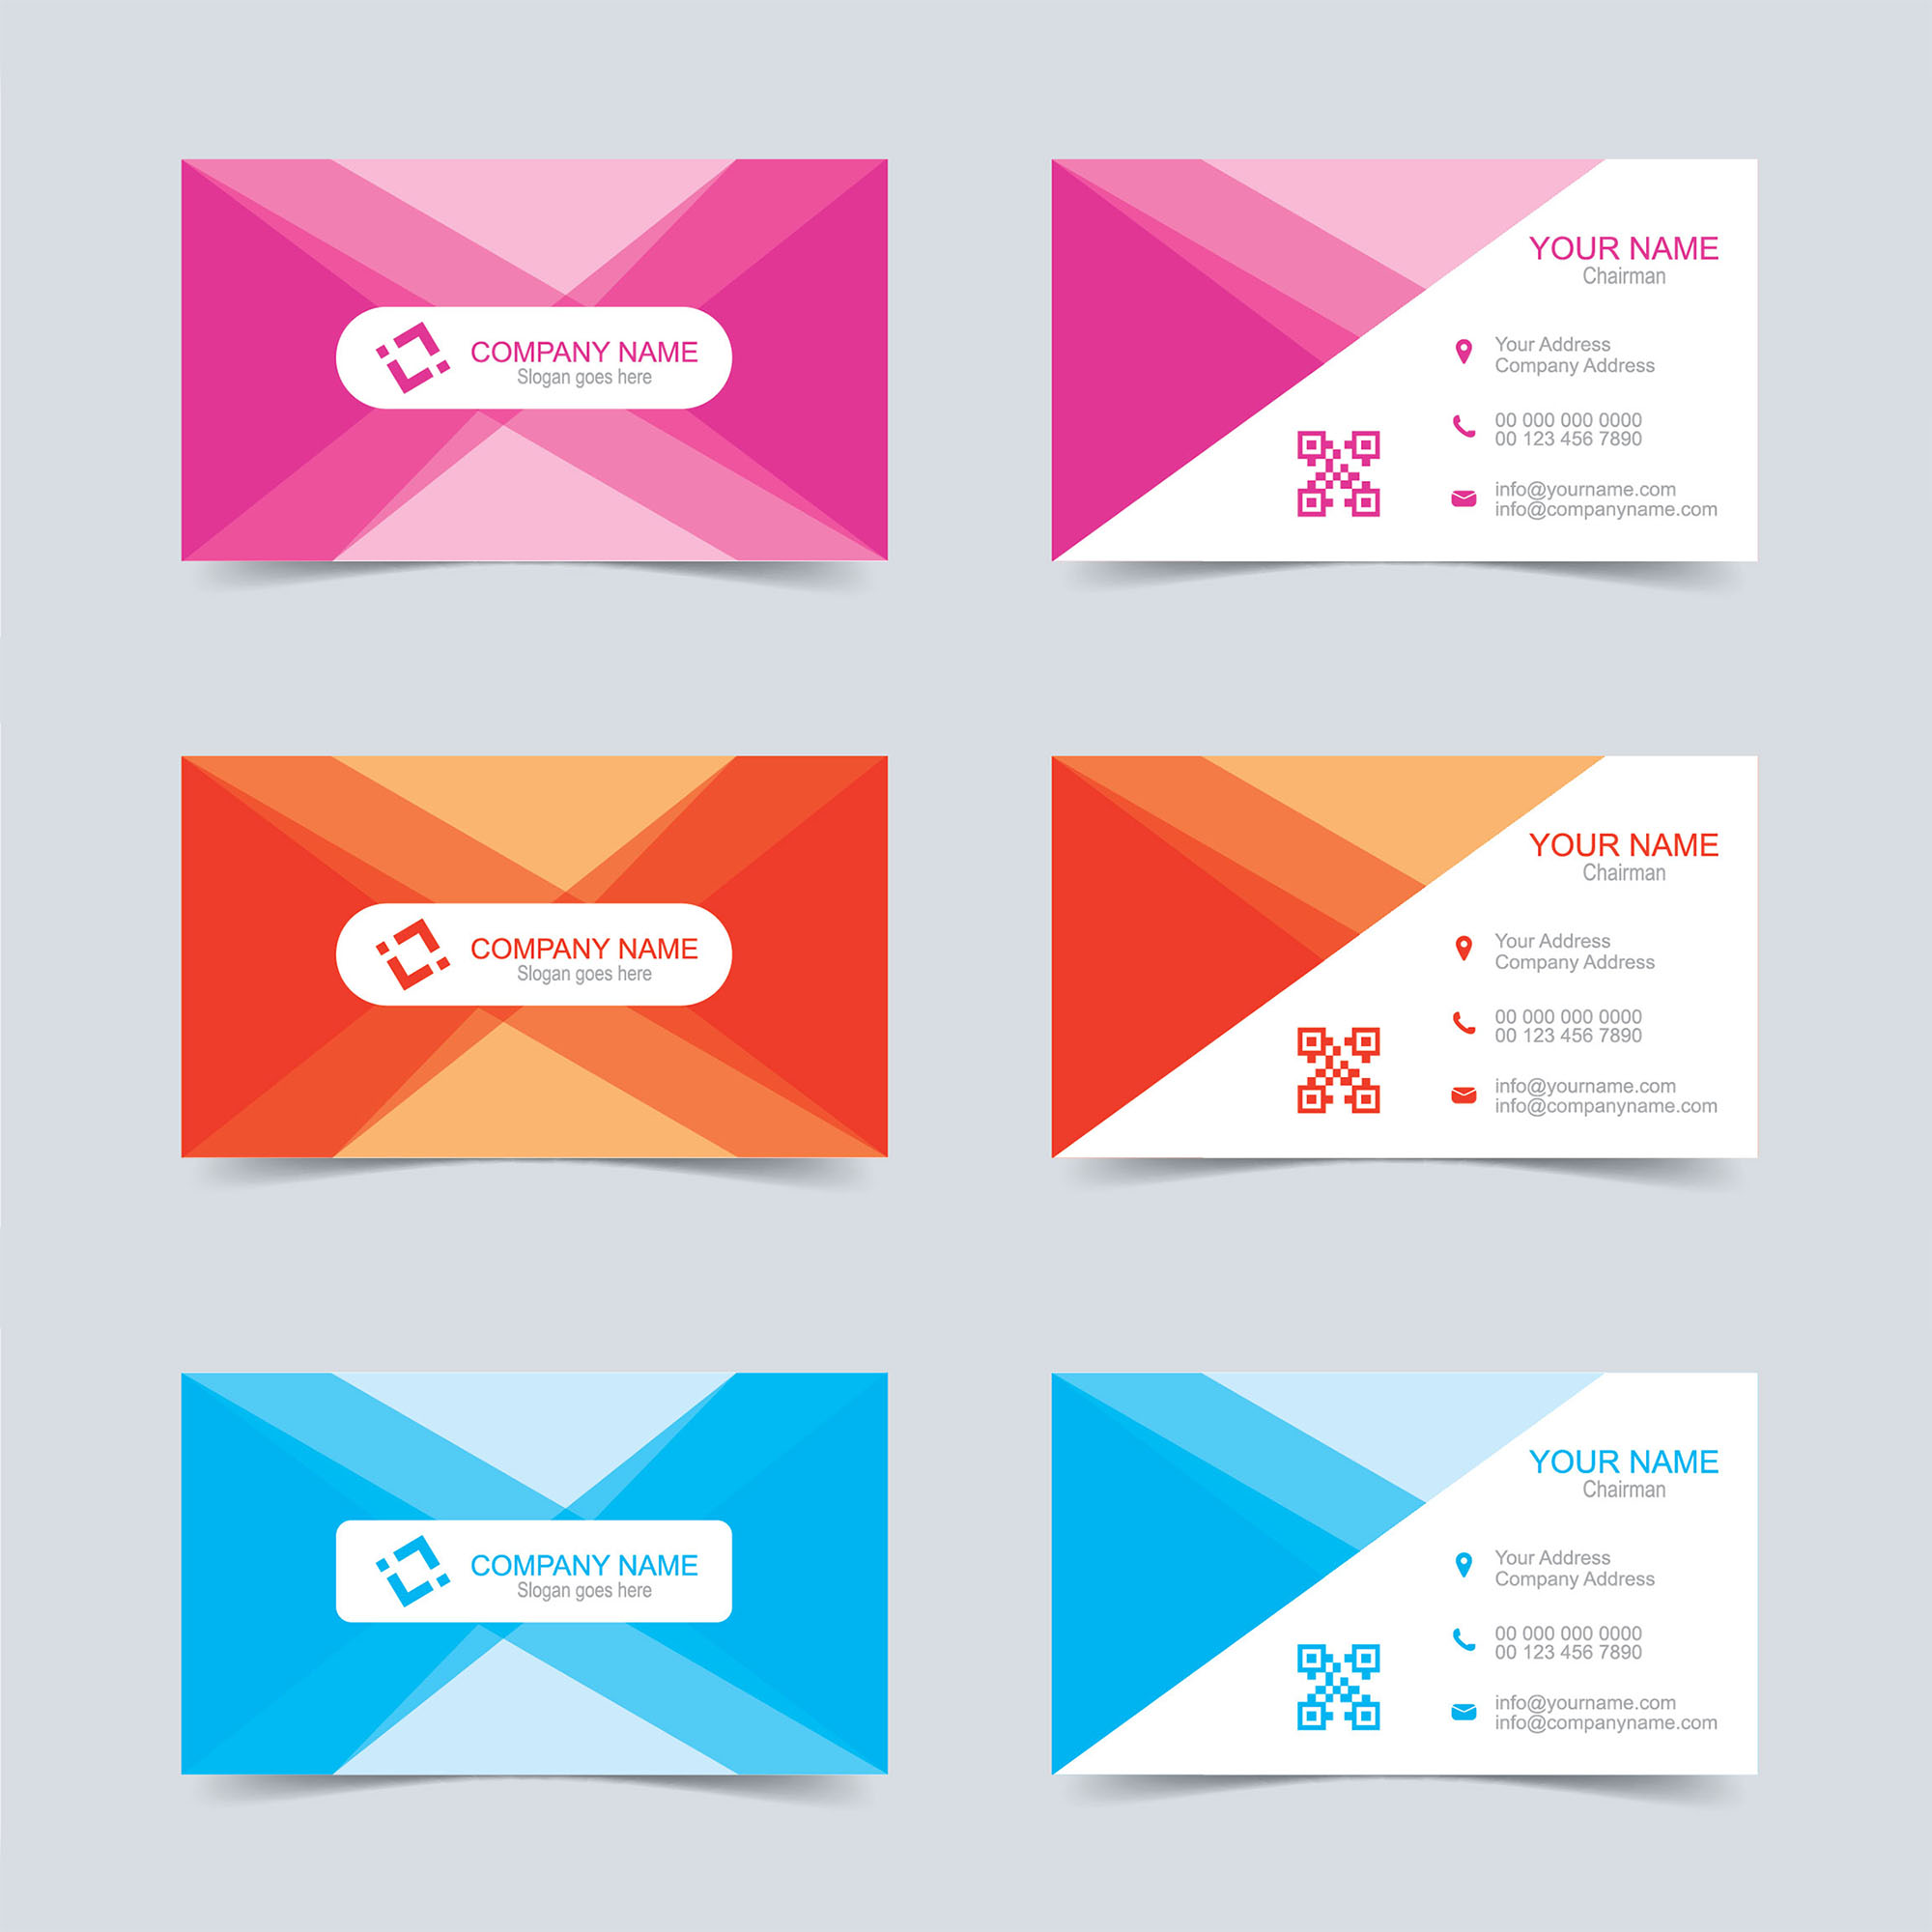 Vector business card template free download wisxi business card business cards business card design business card template design templates accmission Images